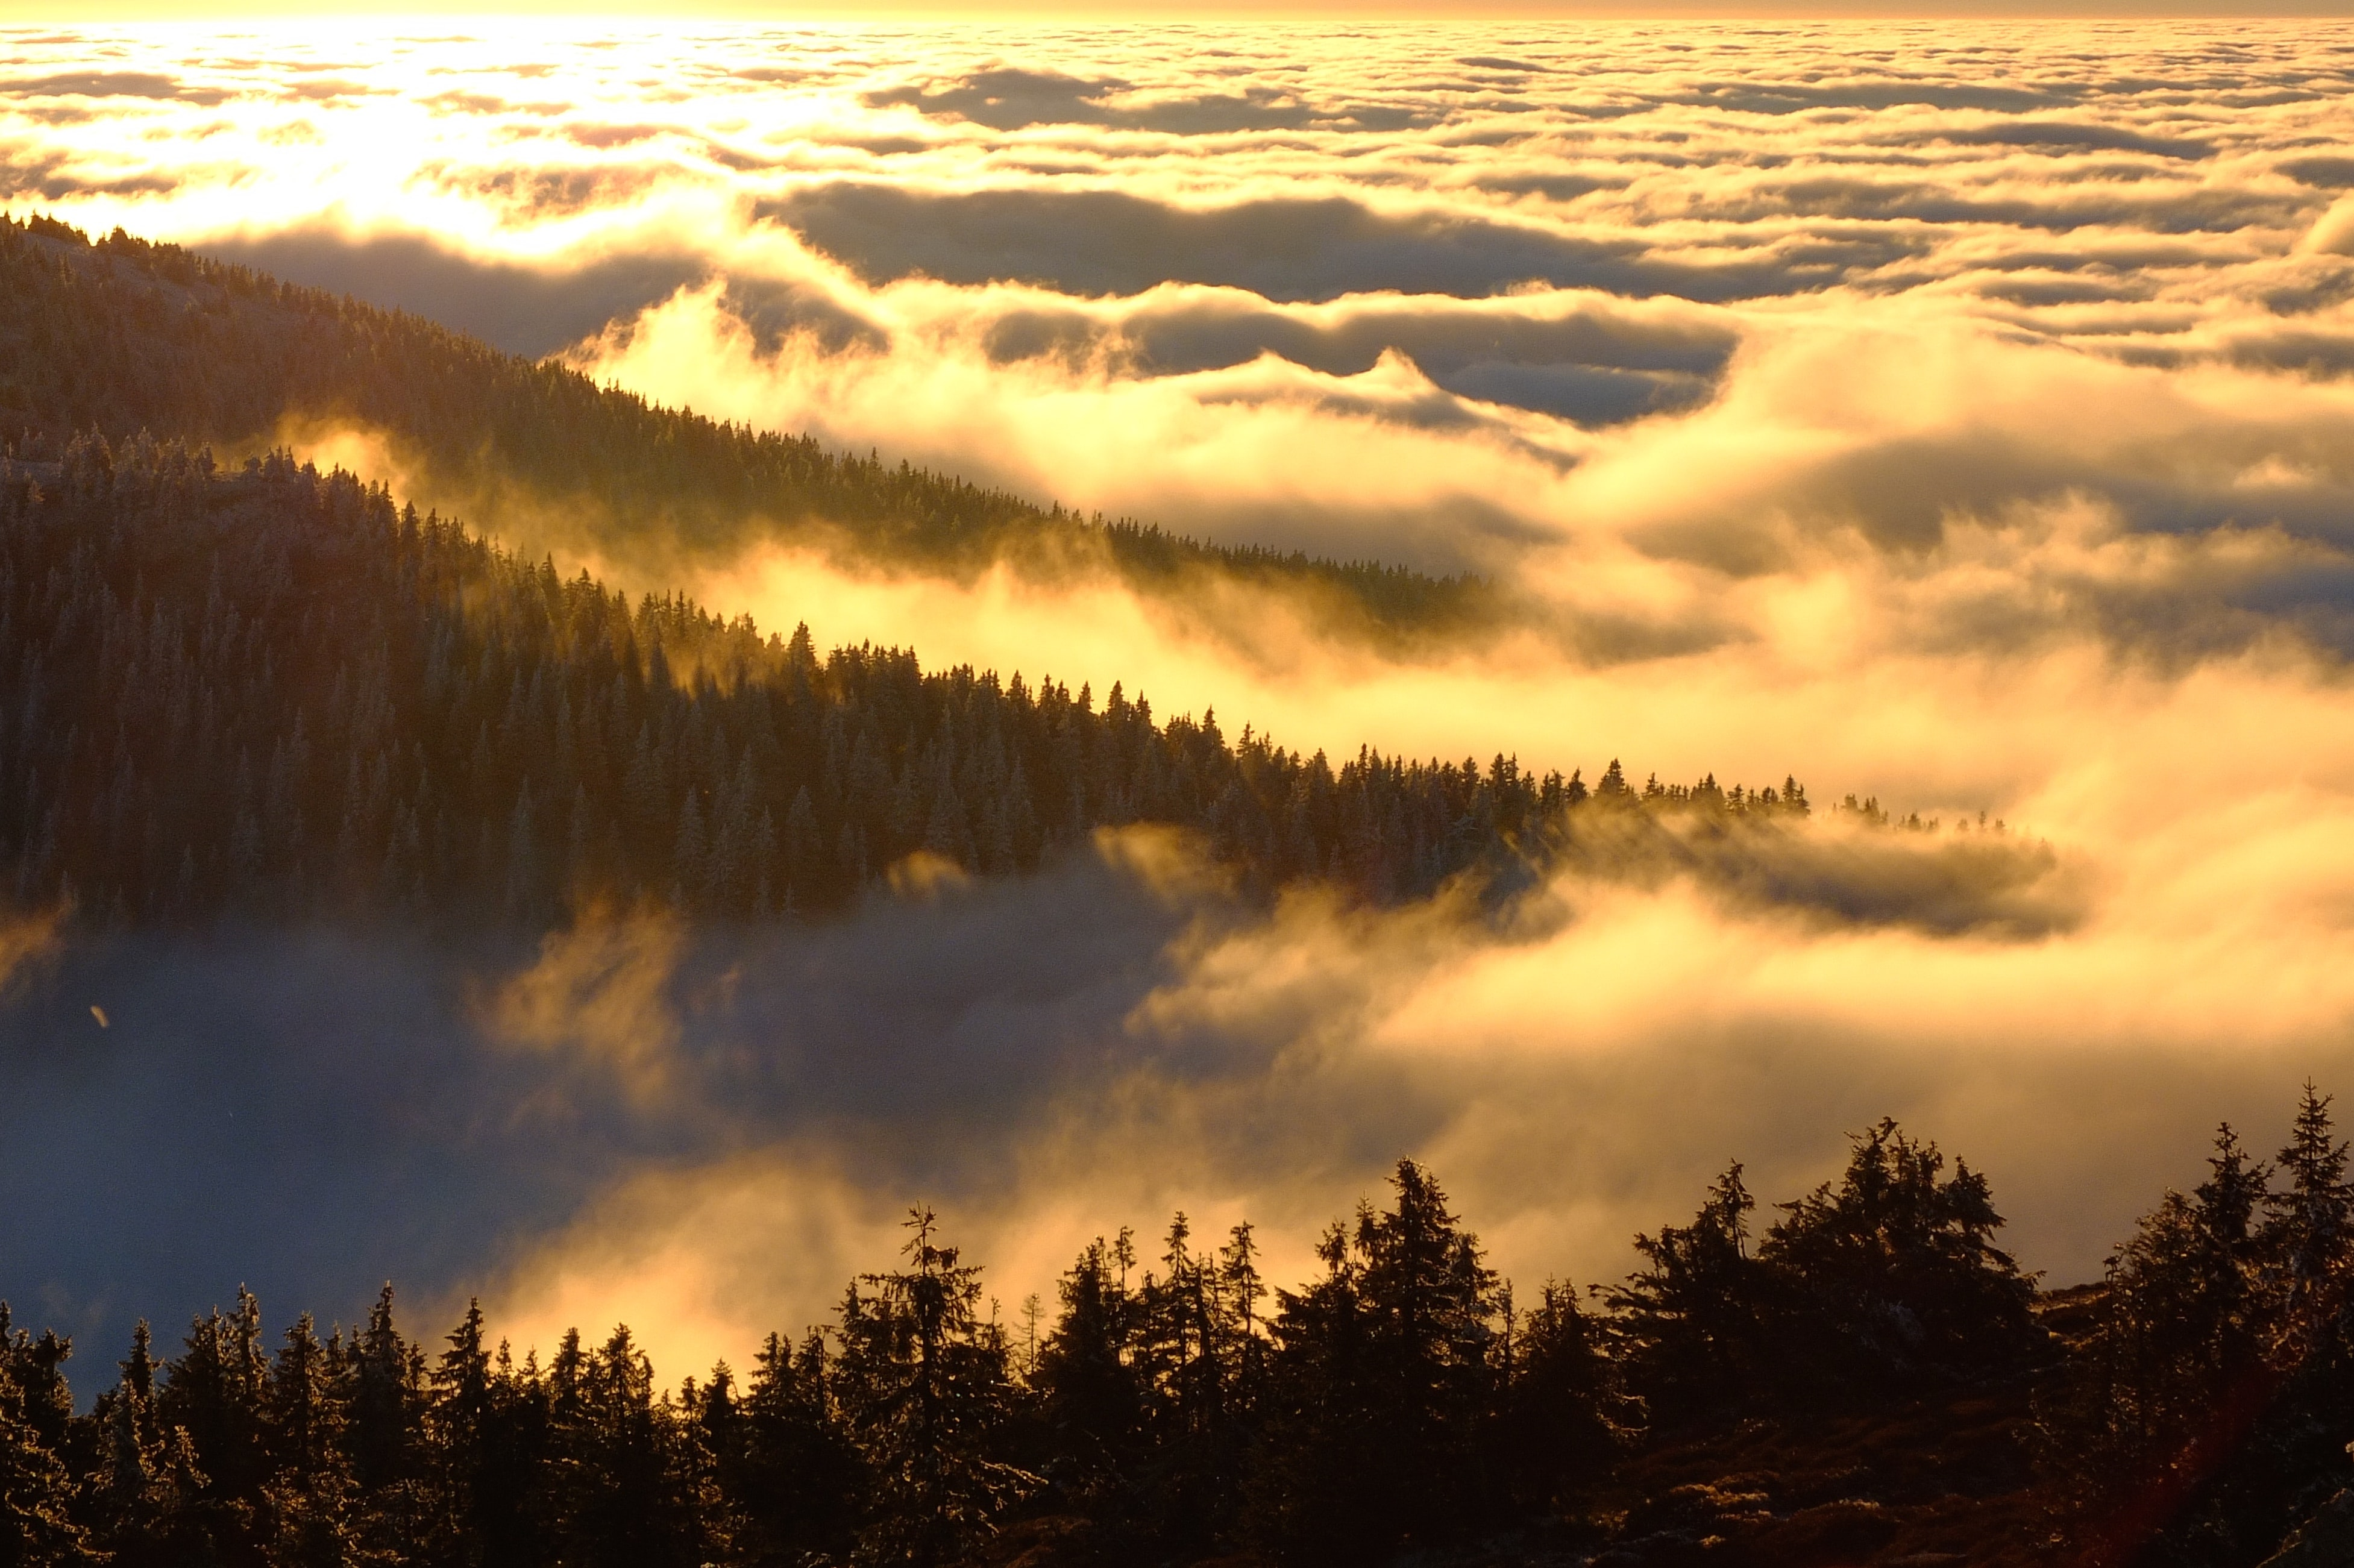 Forested hills rising up above a sea of clouds